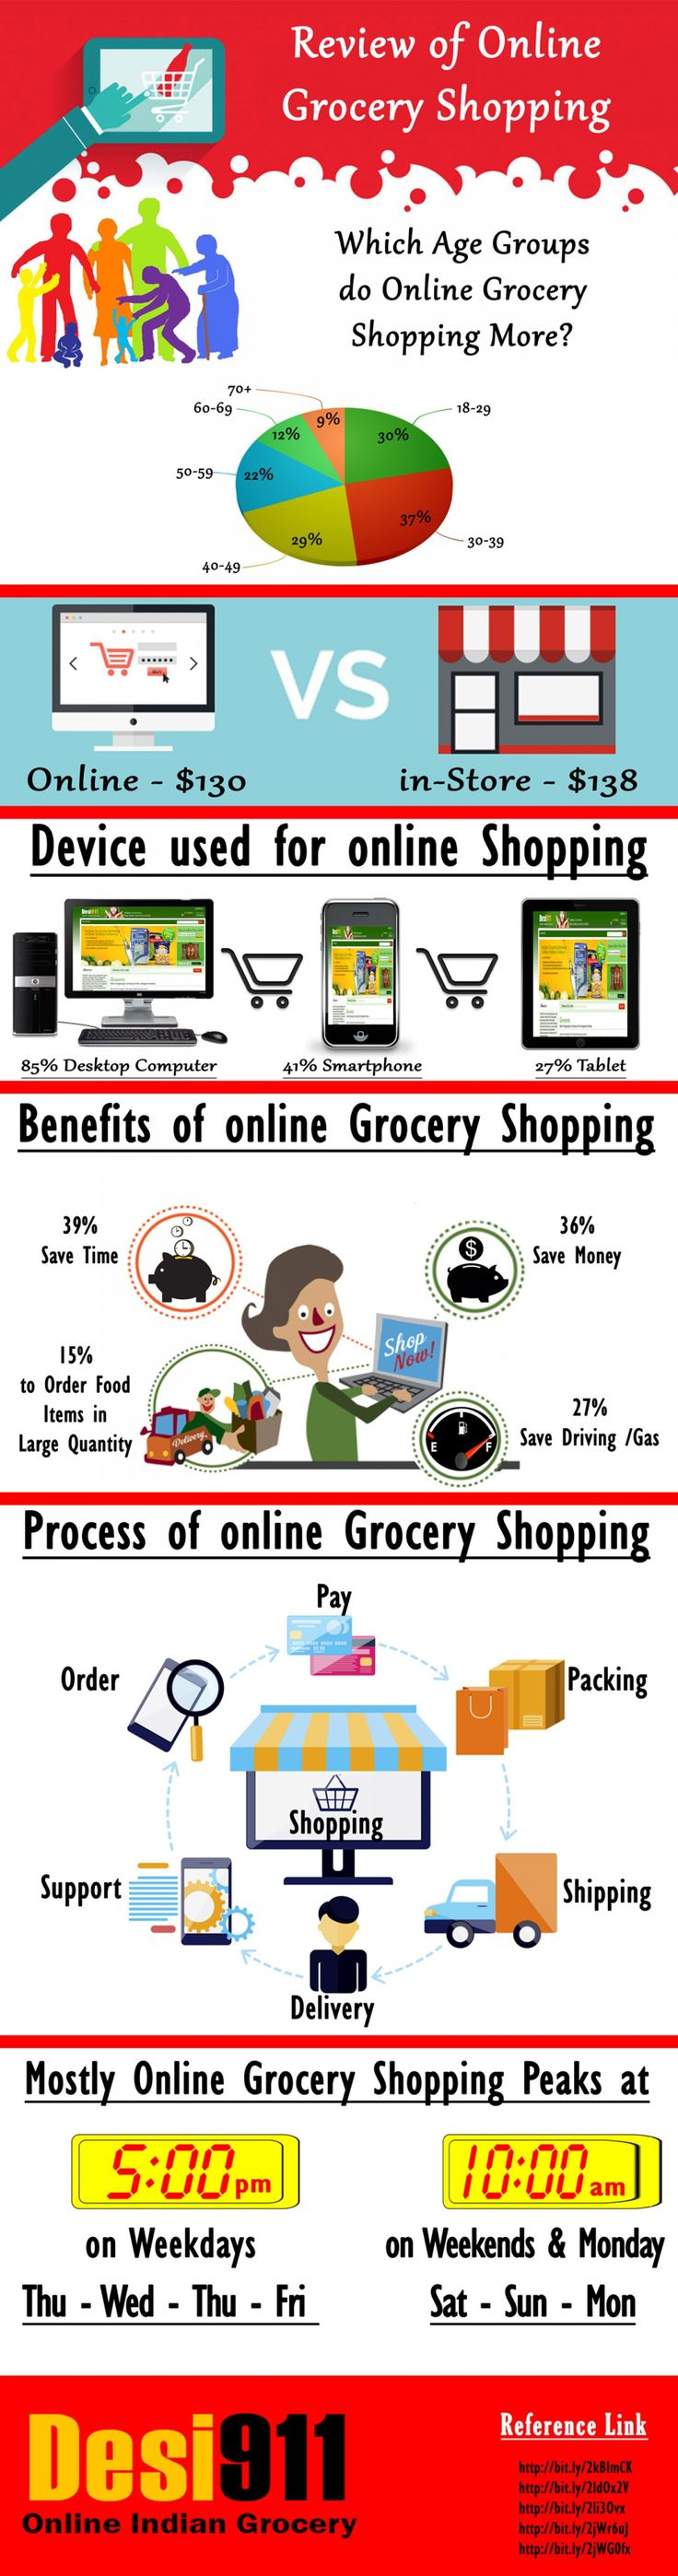 Review of Online Grocery Shopping Infographic